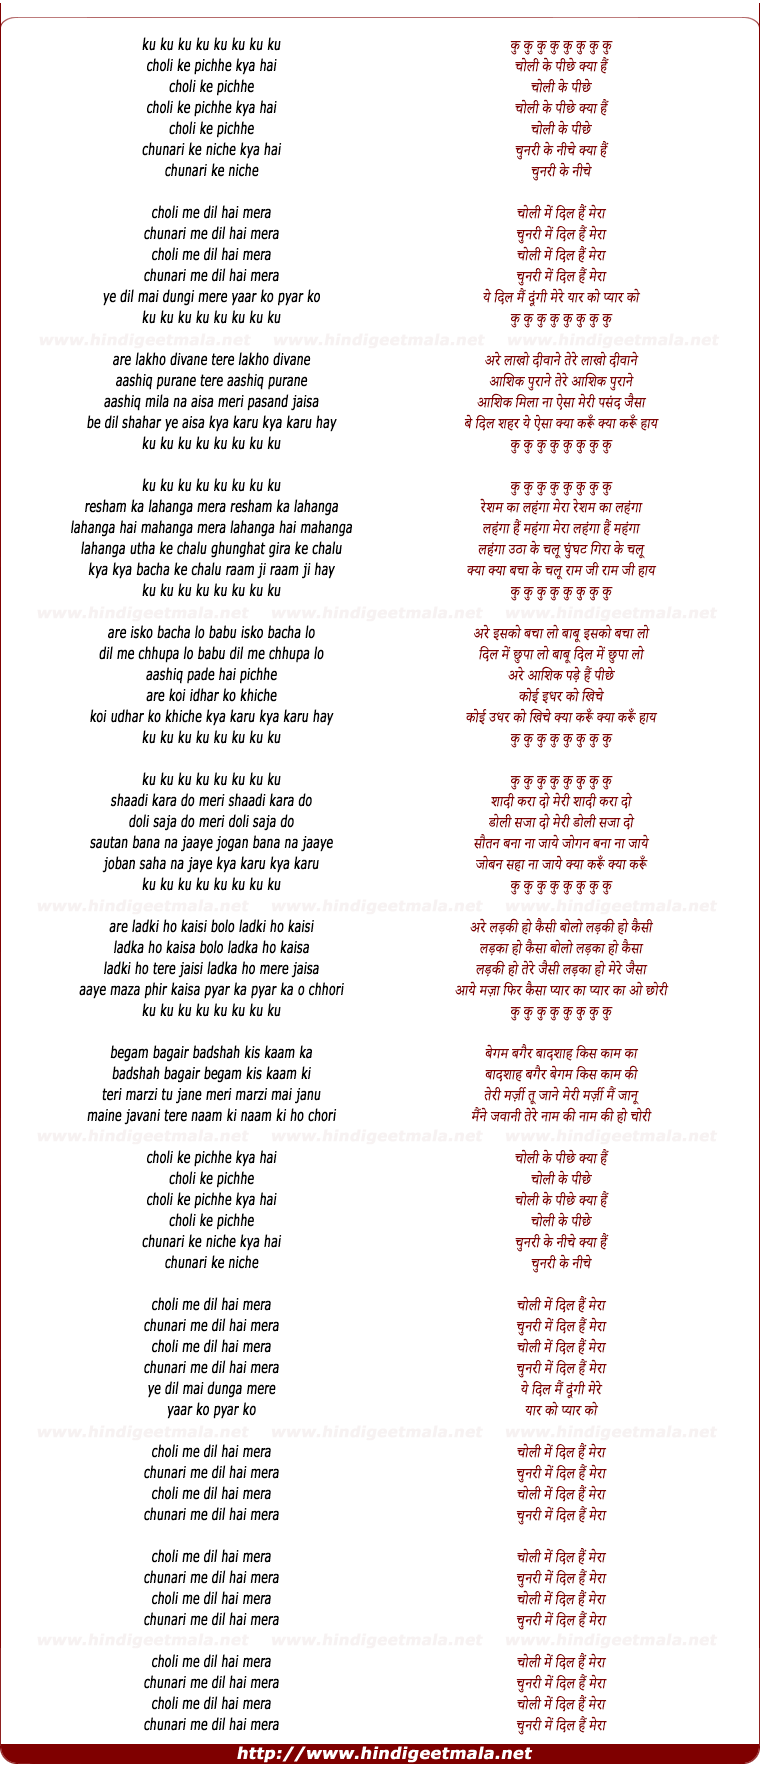 lyrics of song Choli Ke Pichhe Kya Hai (Male)